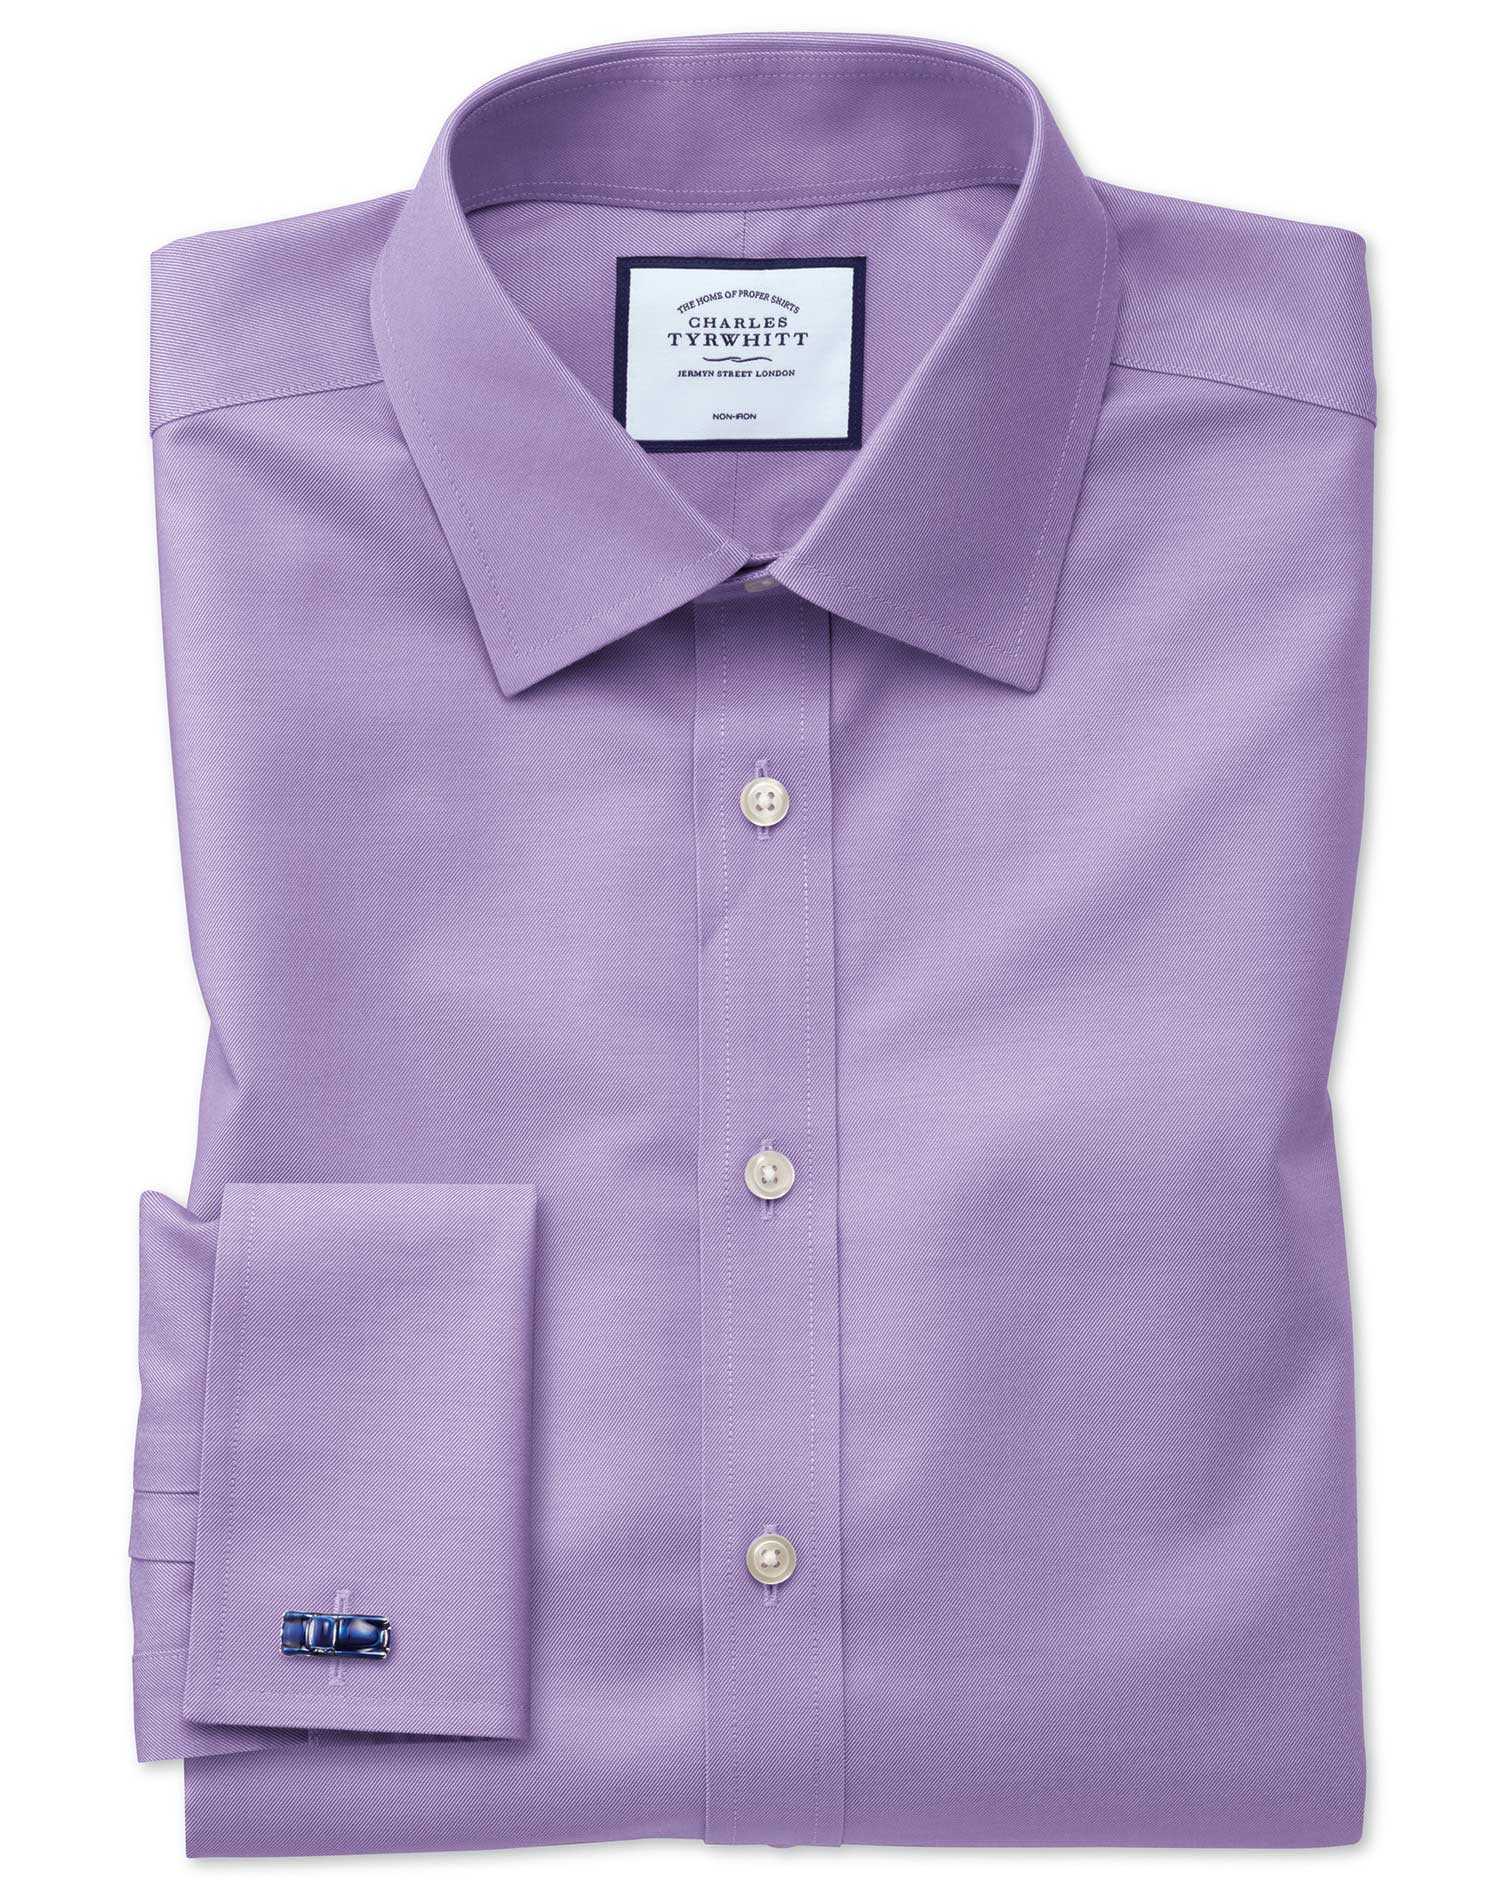 Lilac Non-Iron Twill Classic Fit Single Cuff Size 17.5/36 by Charles Tyrwhitt from Charles Tyrwhitt